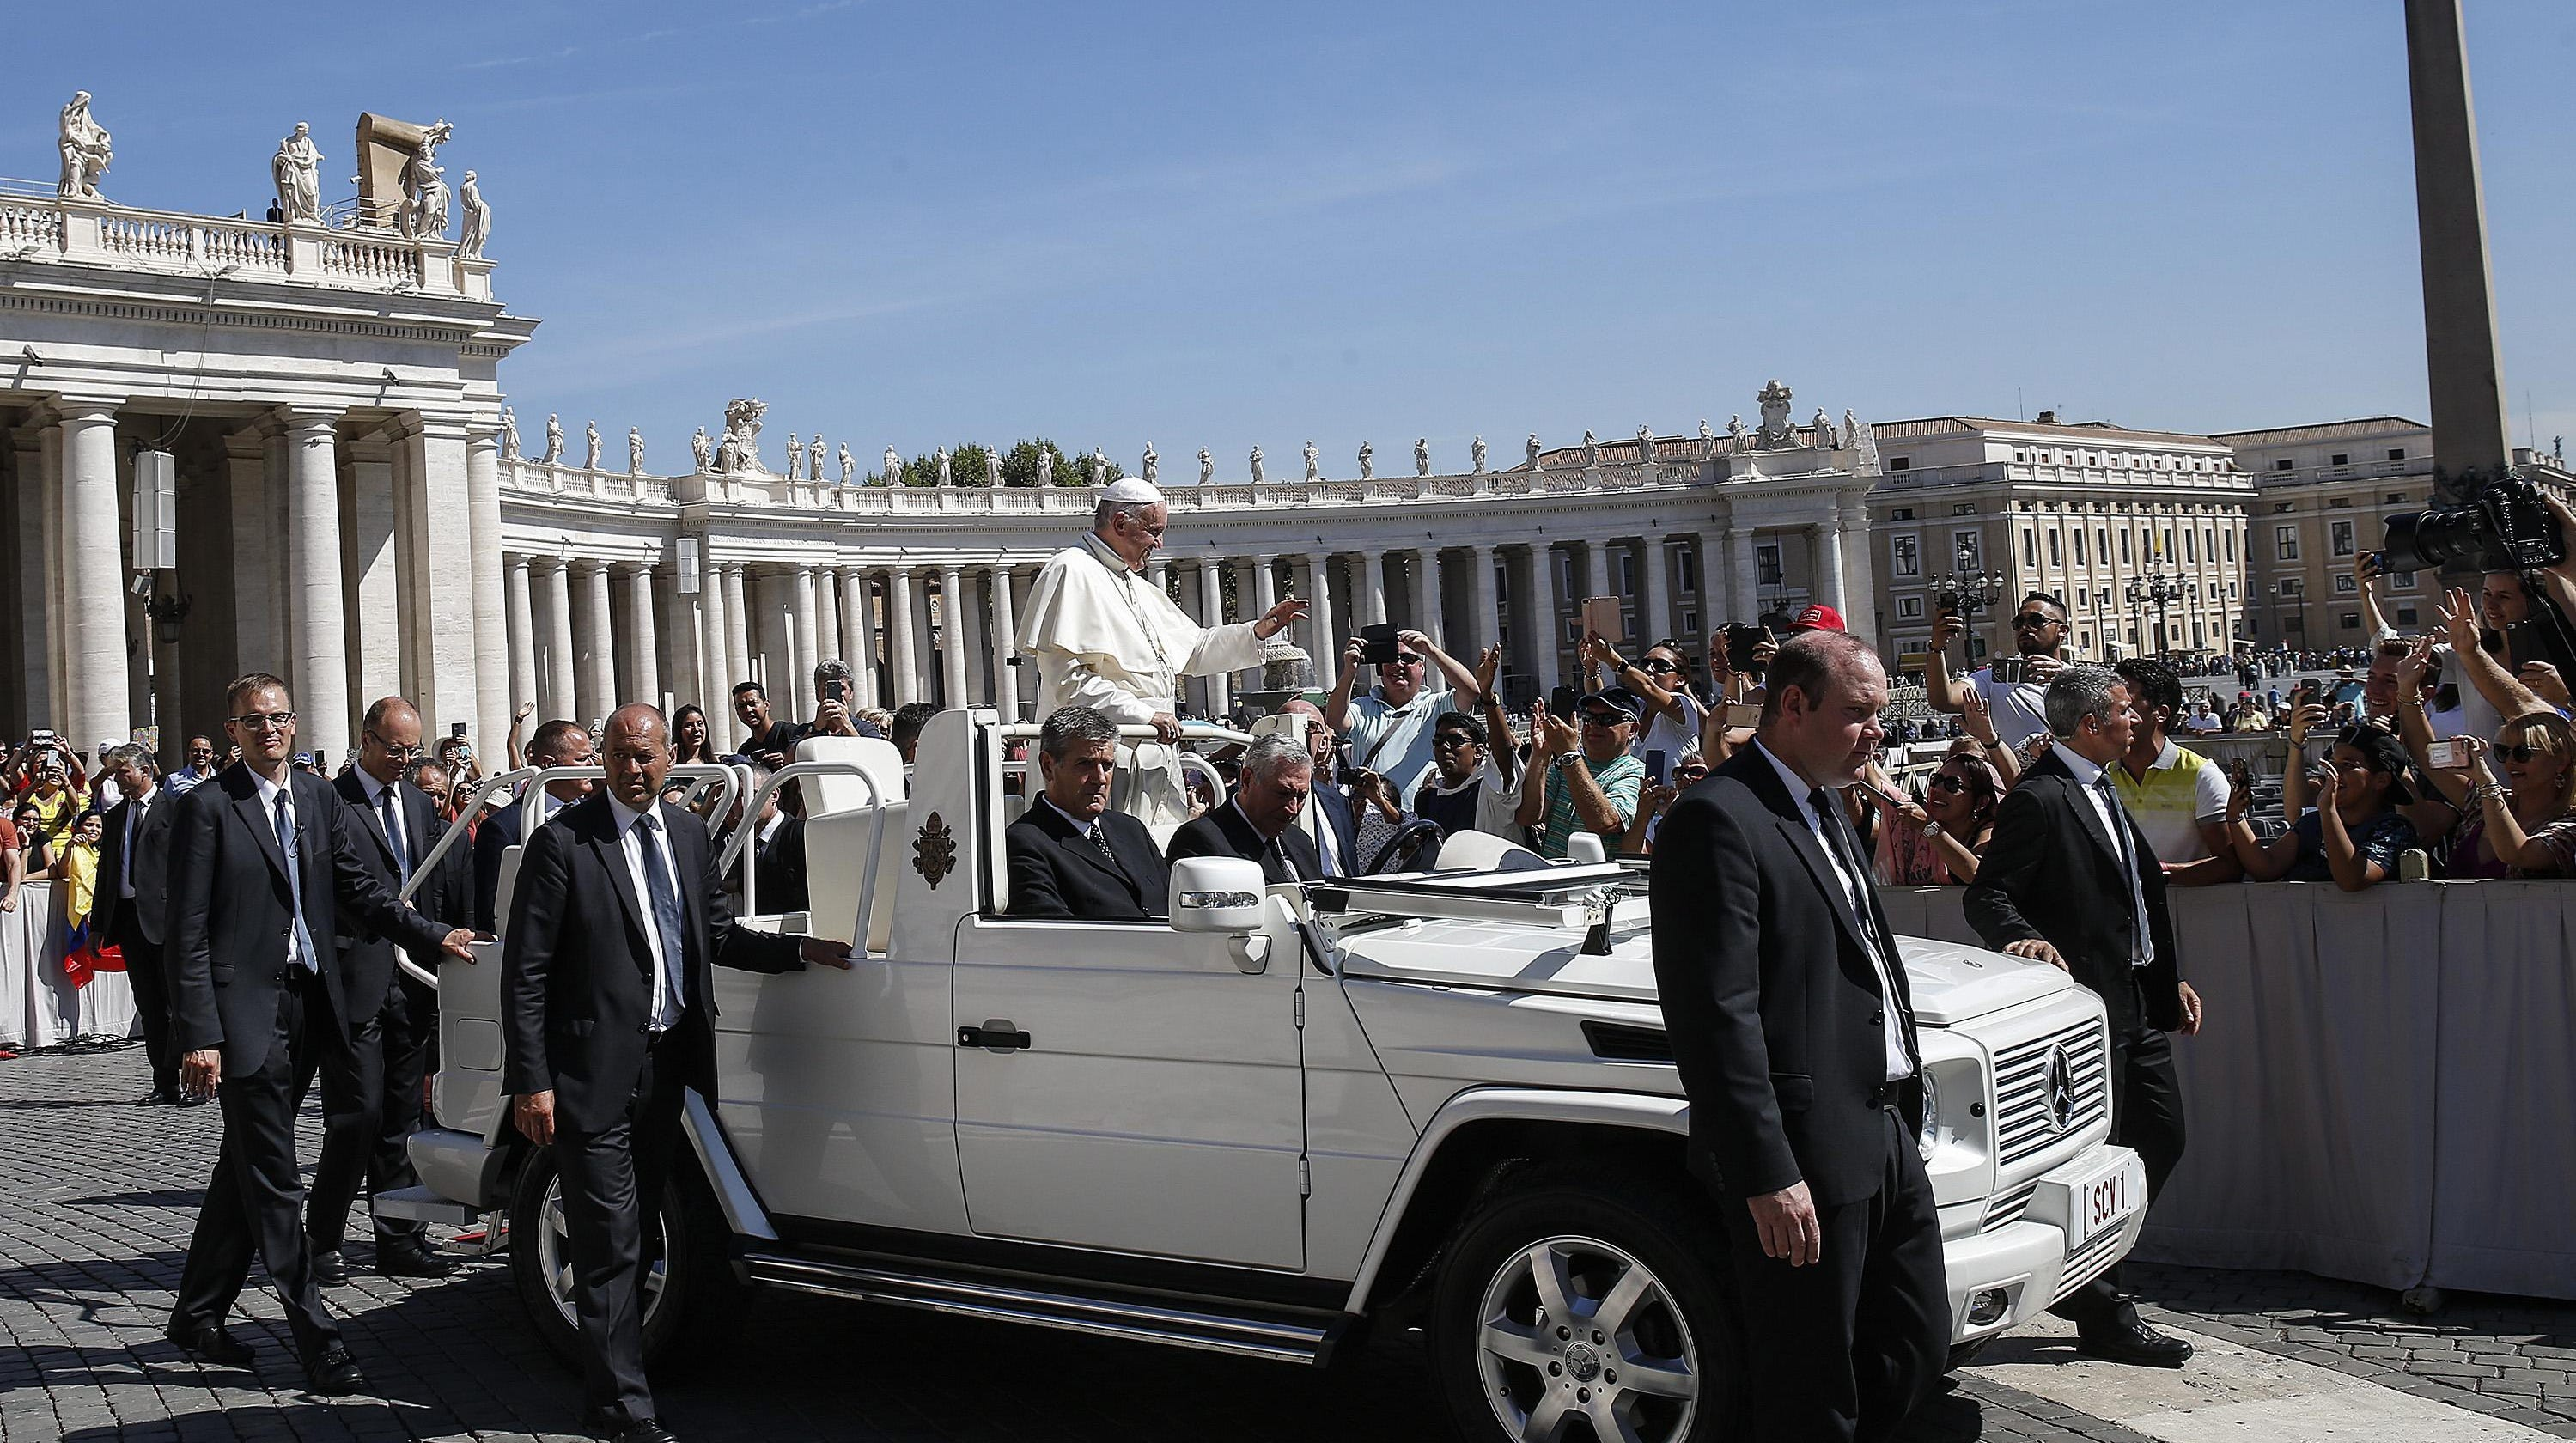 Pope Francis summons bishops to Vatican for summit on preventing sex abuse